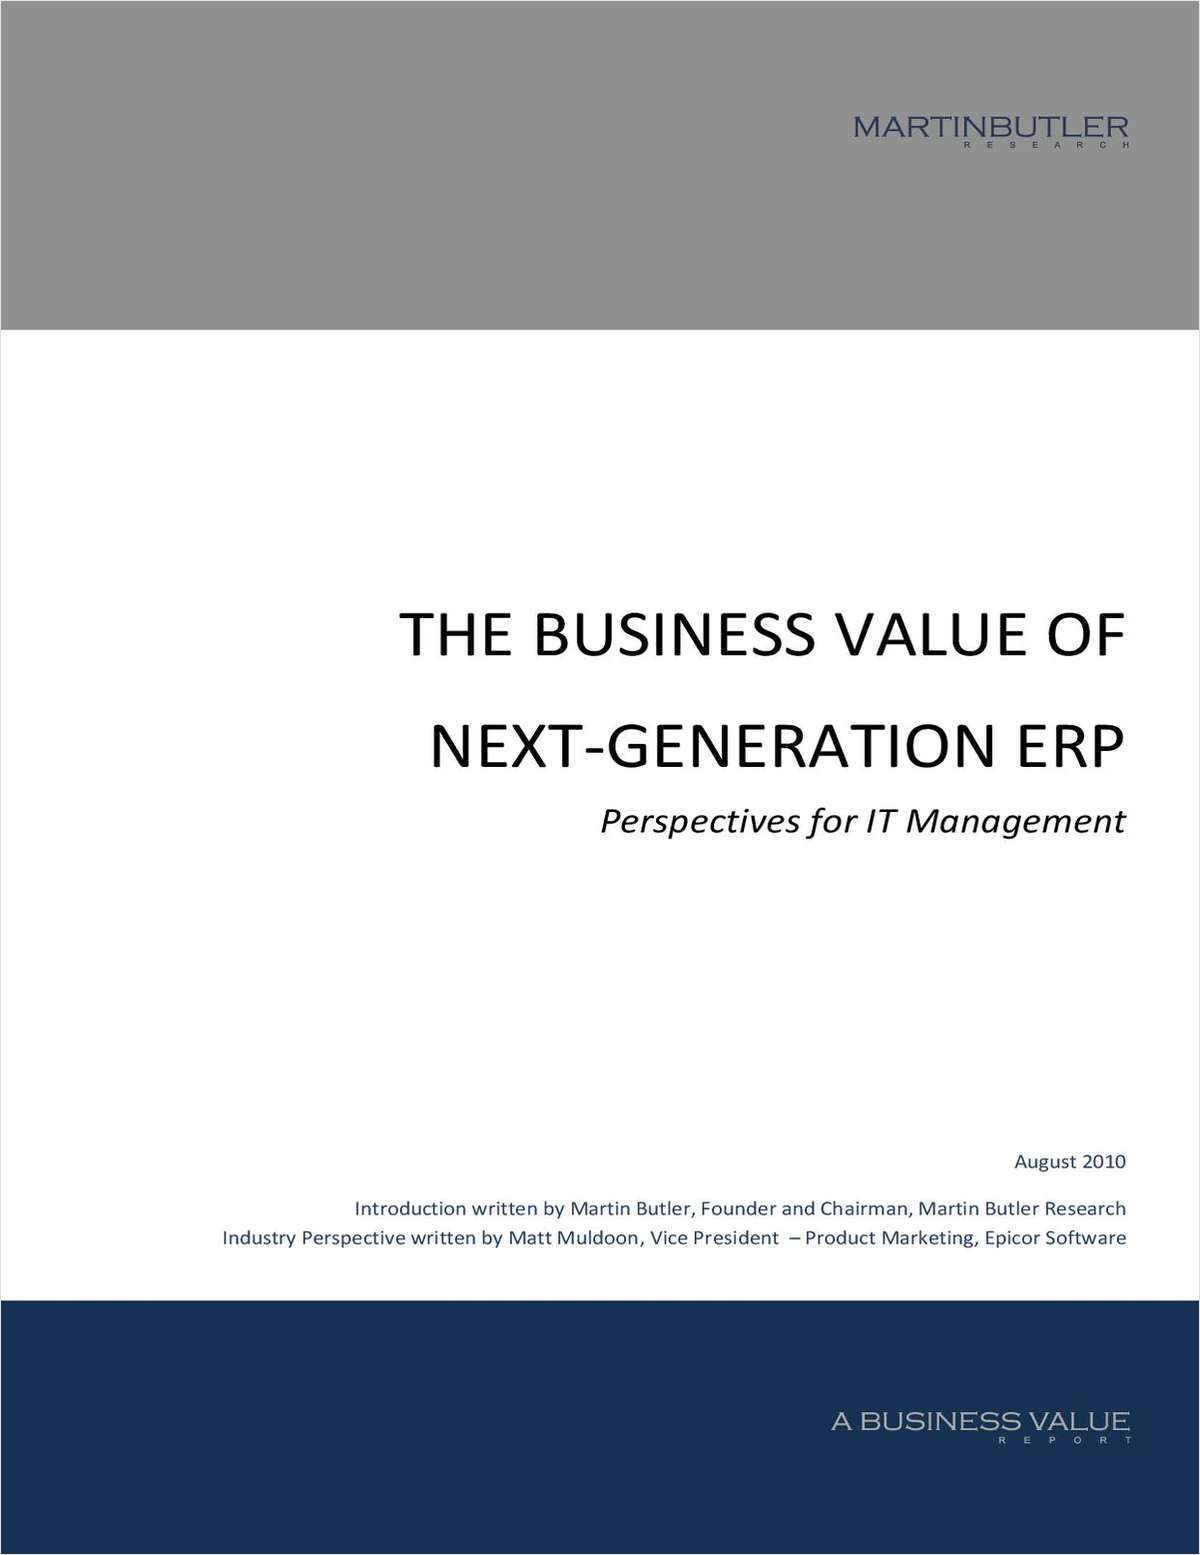 The Business Value of Next-Generation ERP: Perspectives for IT Management in Manufacturing